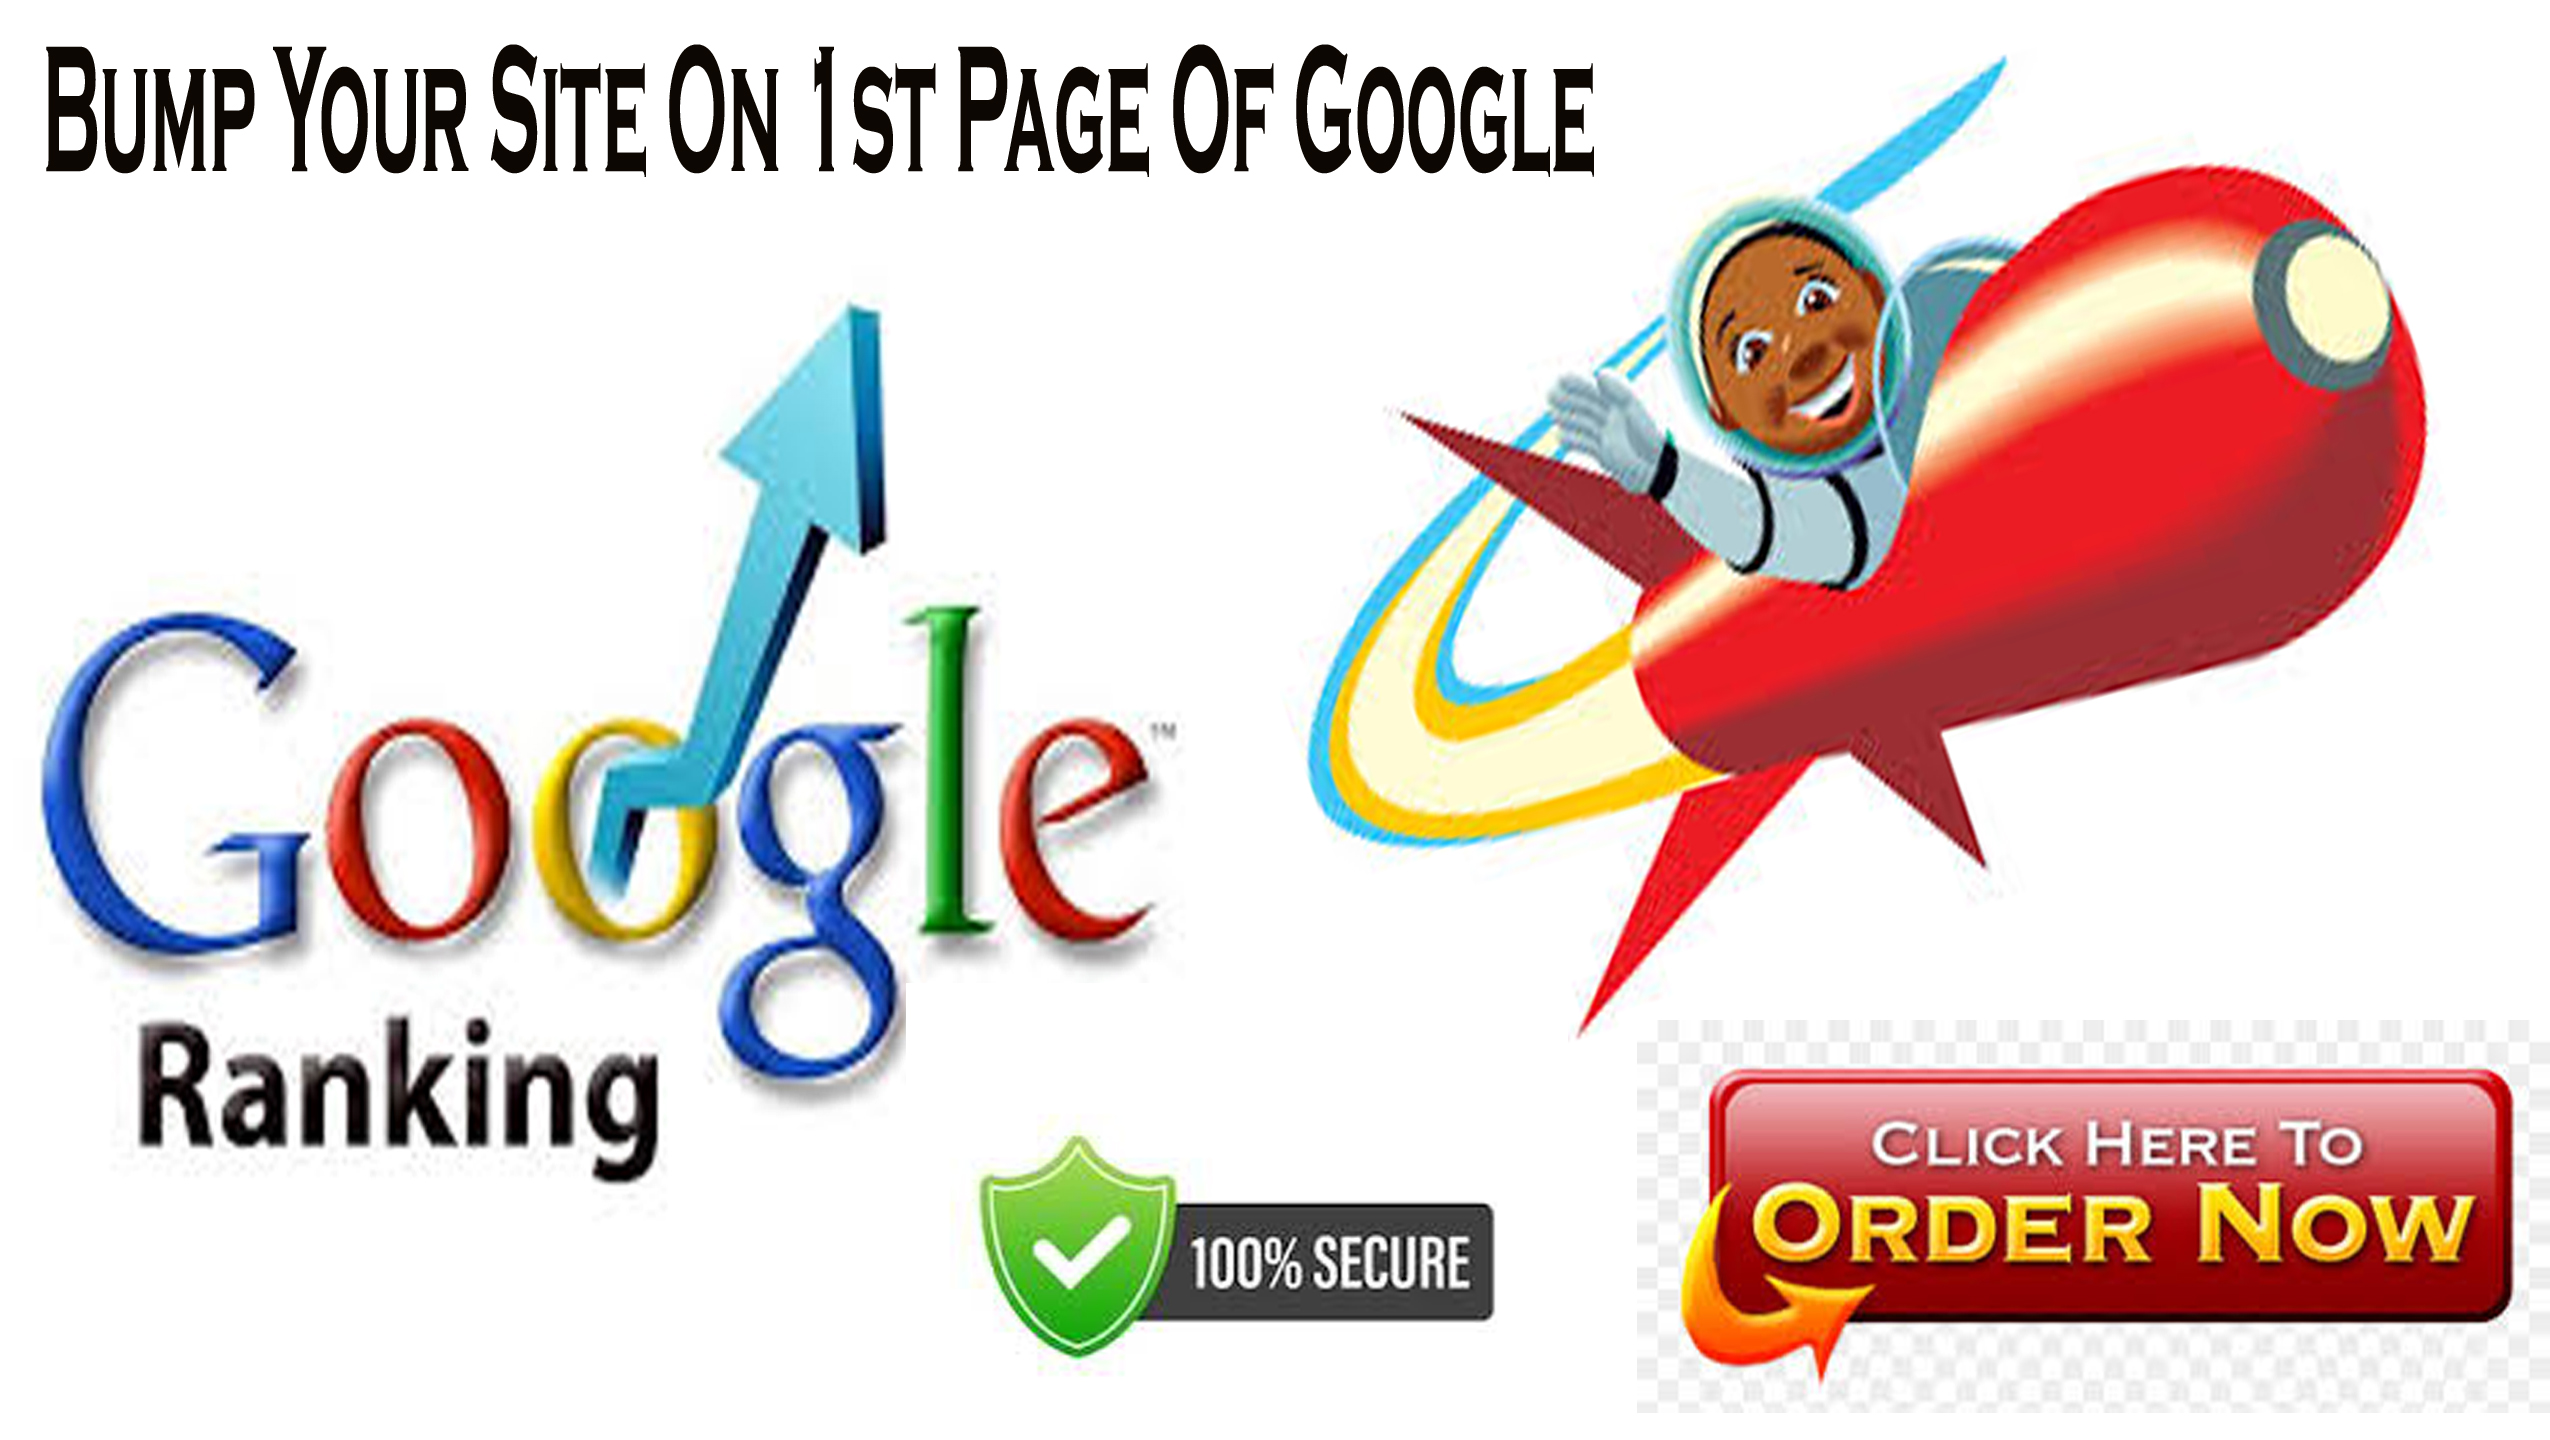 Get Rank Your Site On 1st Page Of Google With Our Guaranteed All in One Seo Strategy